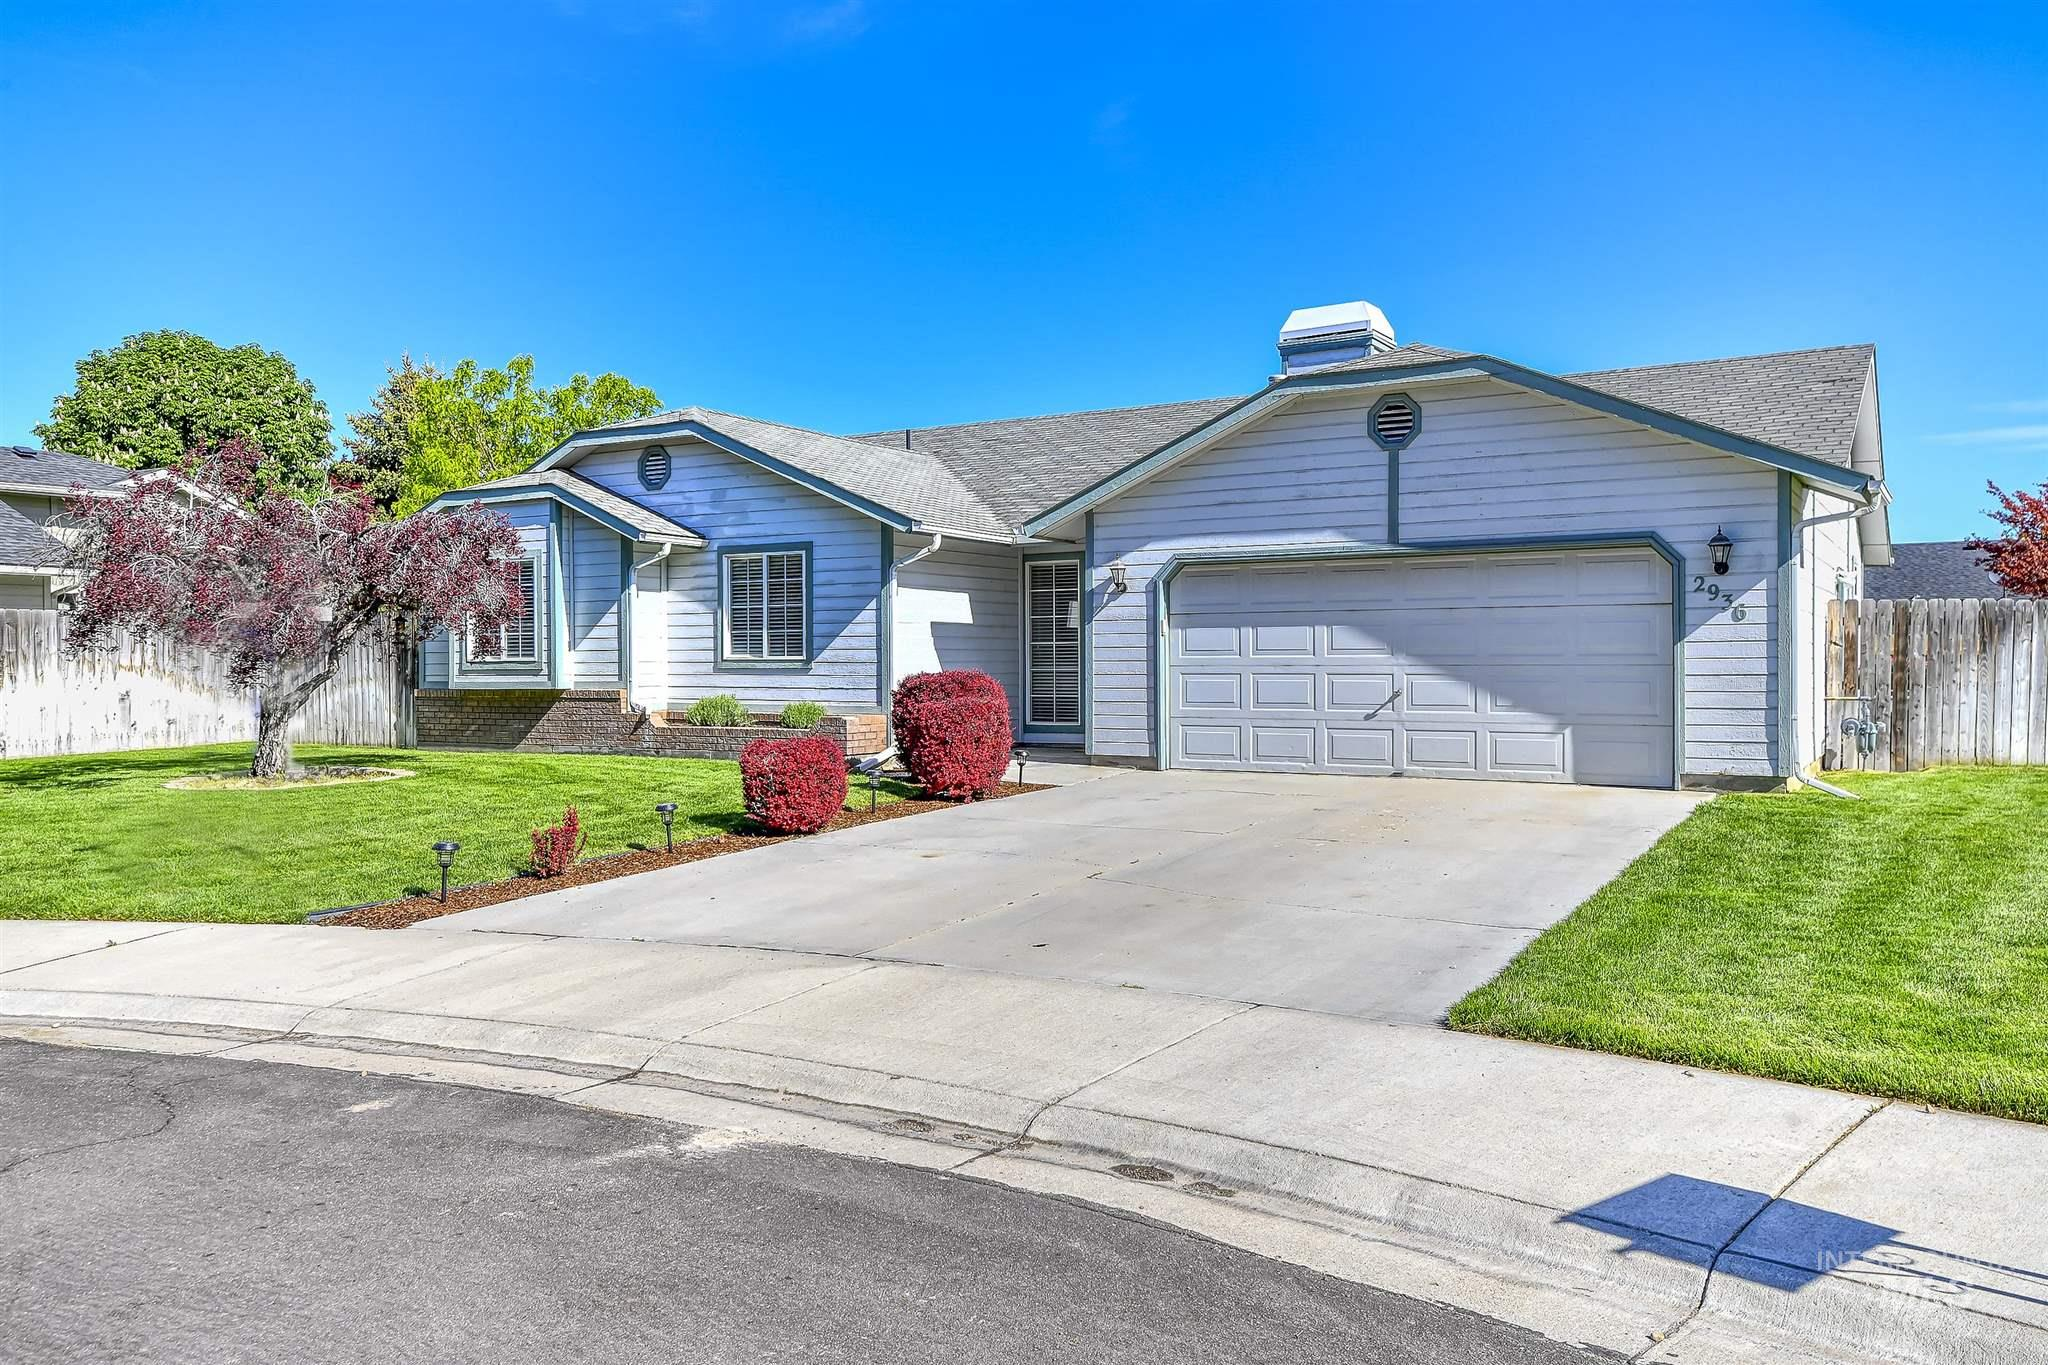 2936 W Stephanie Ct Property Photo - Meridian, ID real estate listing